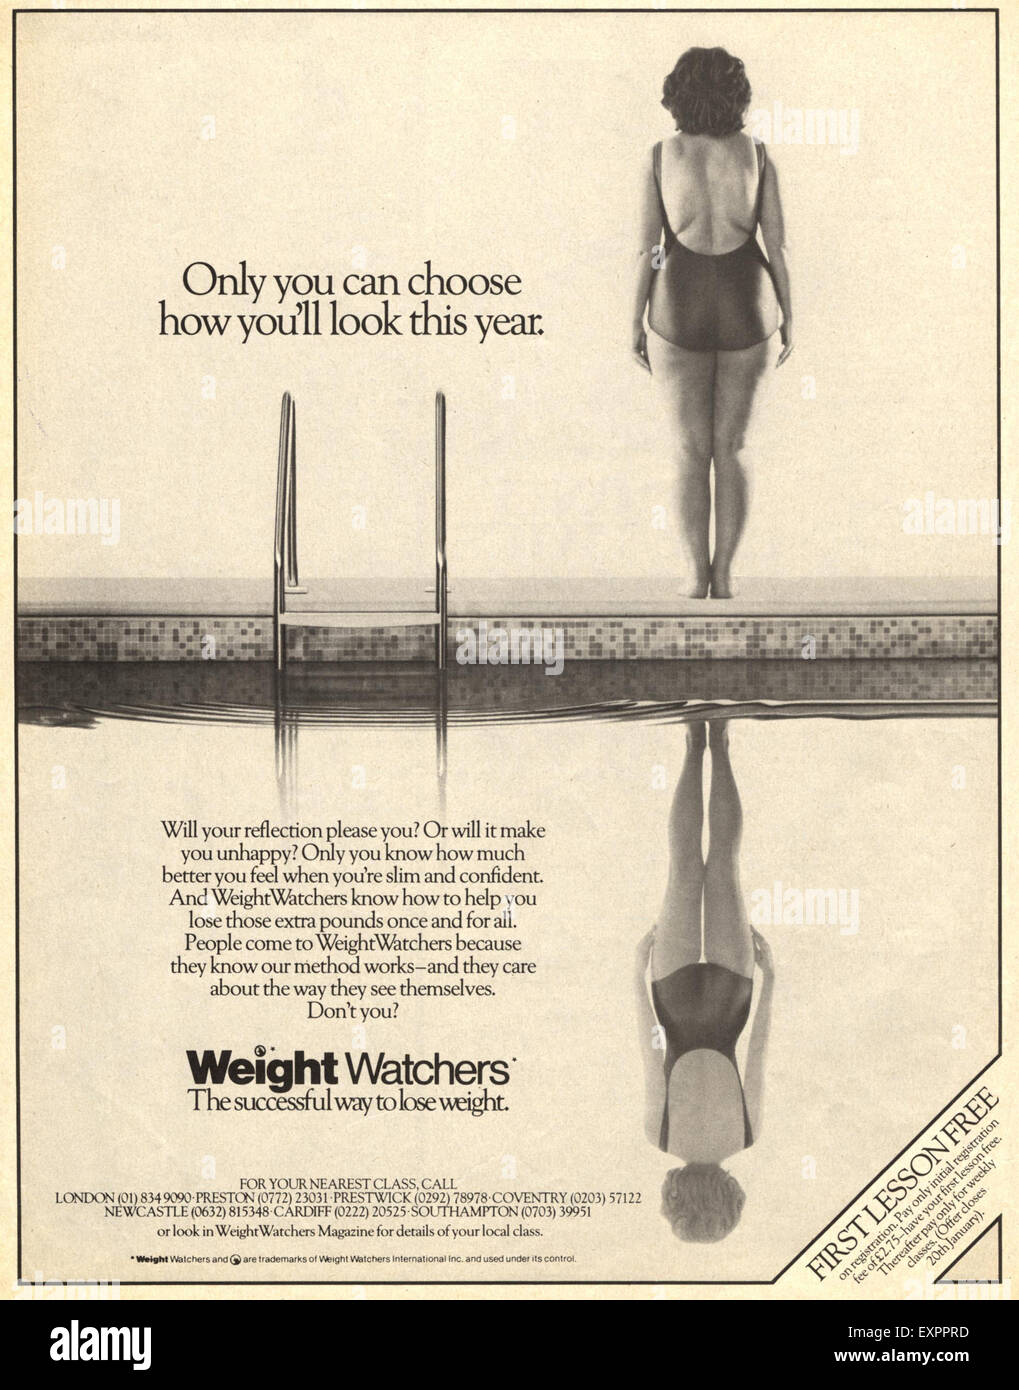 1980s UK Weight Watchers Magazine Advert - Stock Image